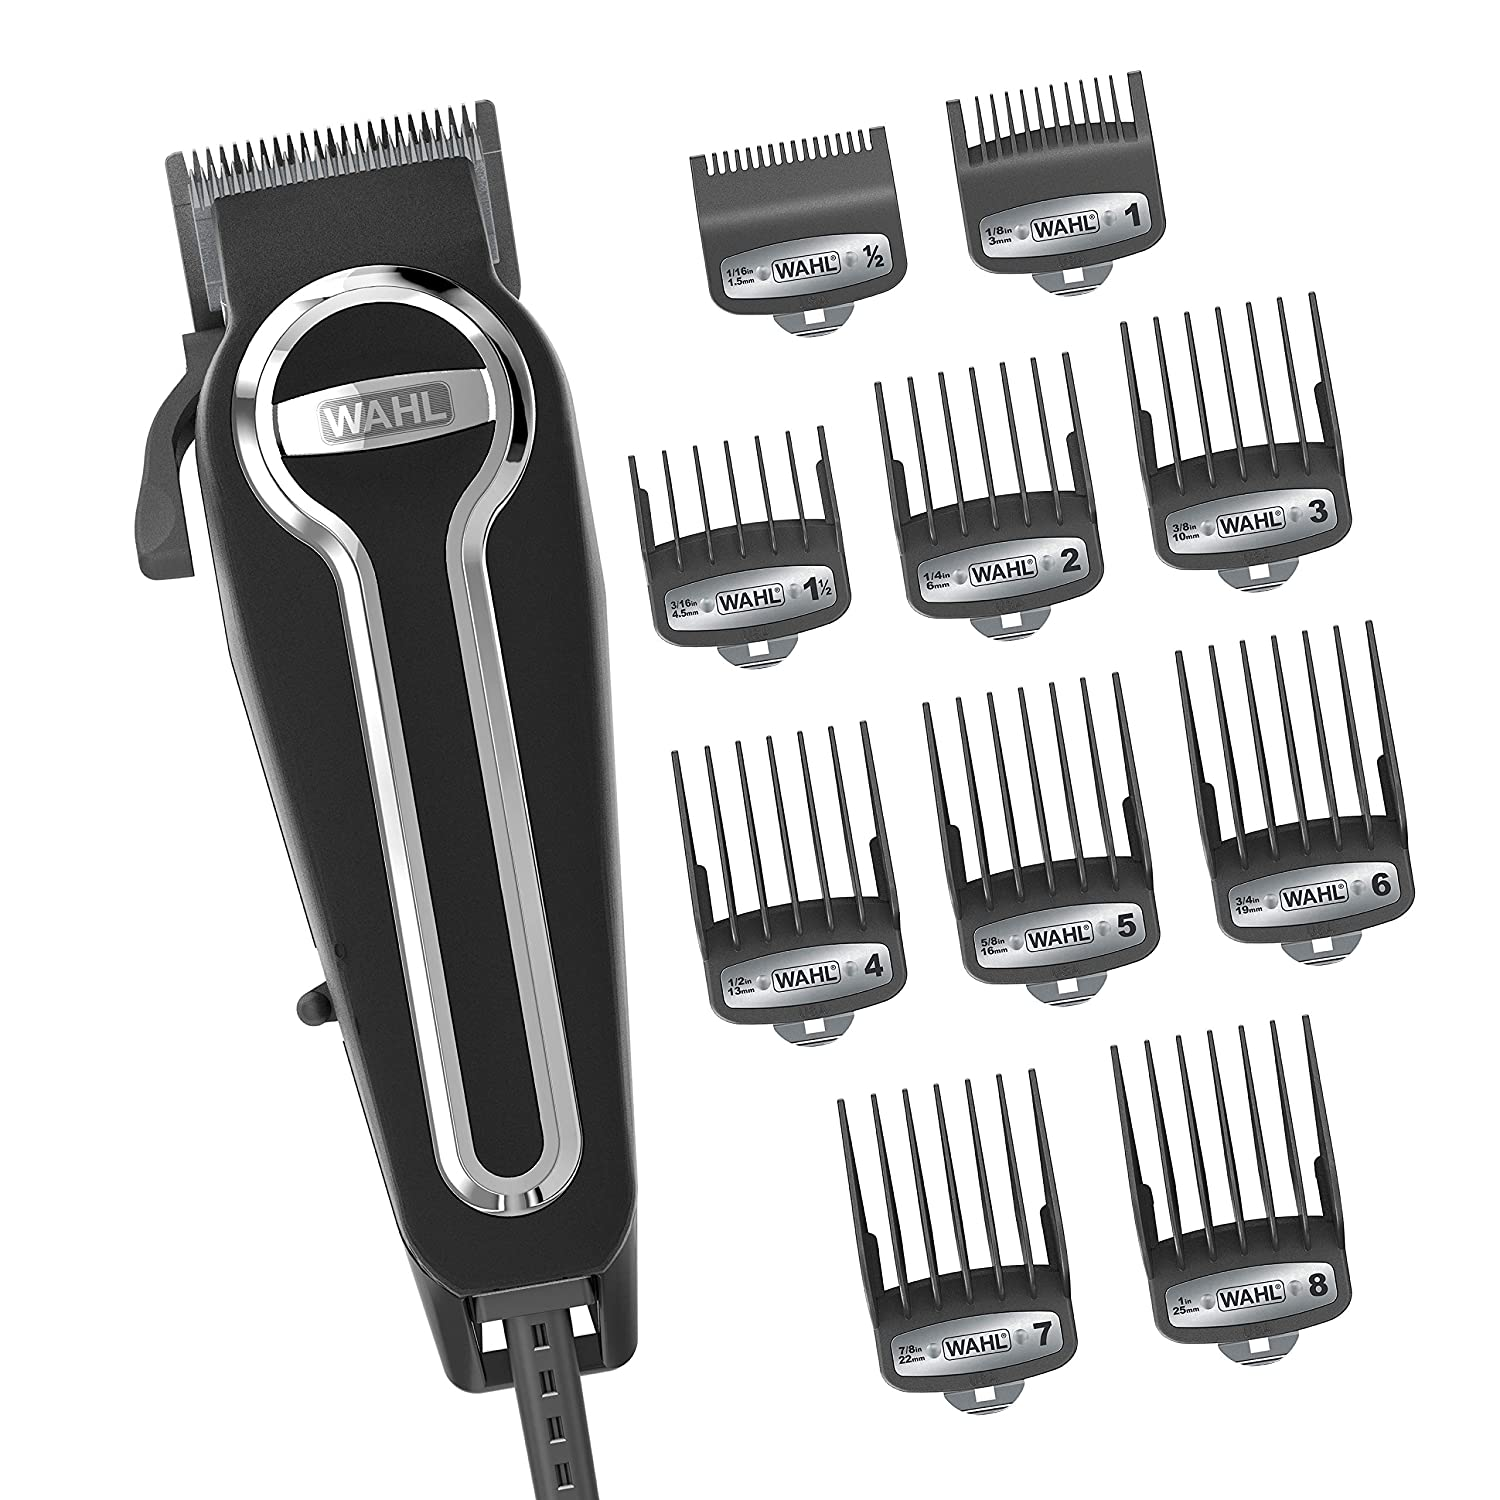 Wahl Elite Pro Haircutting Kit Hair Clippers